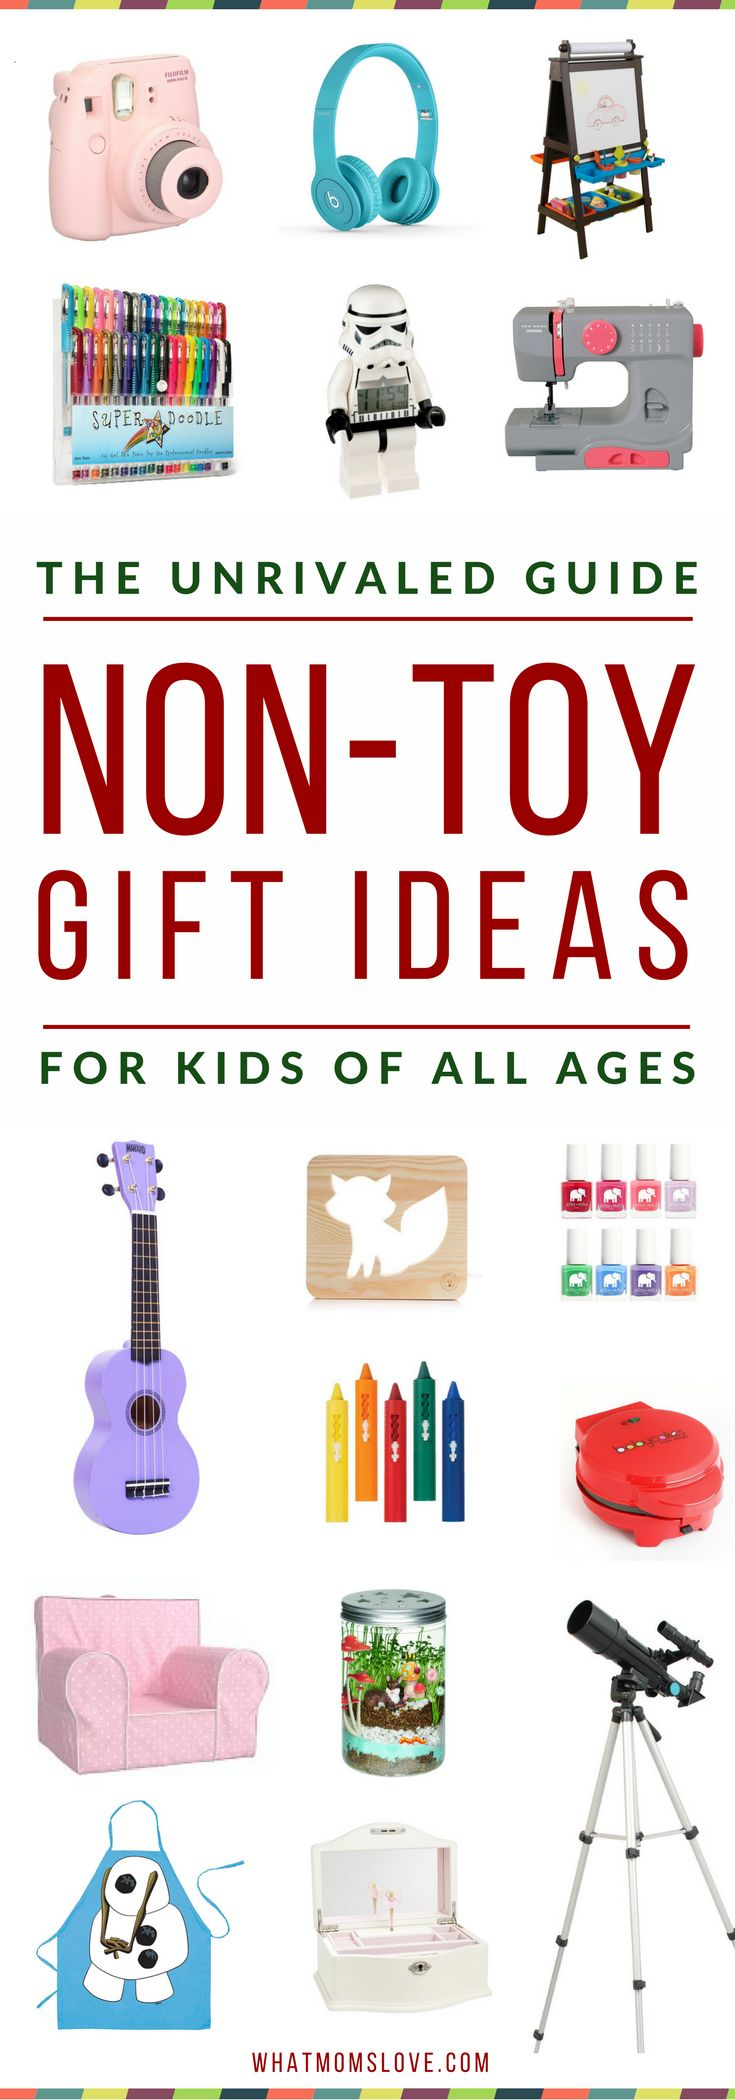 Best Non-Toy Gift Guide For Kids - Holidays Birthdays